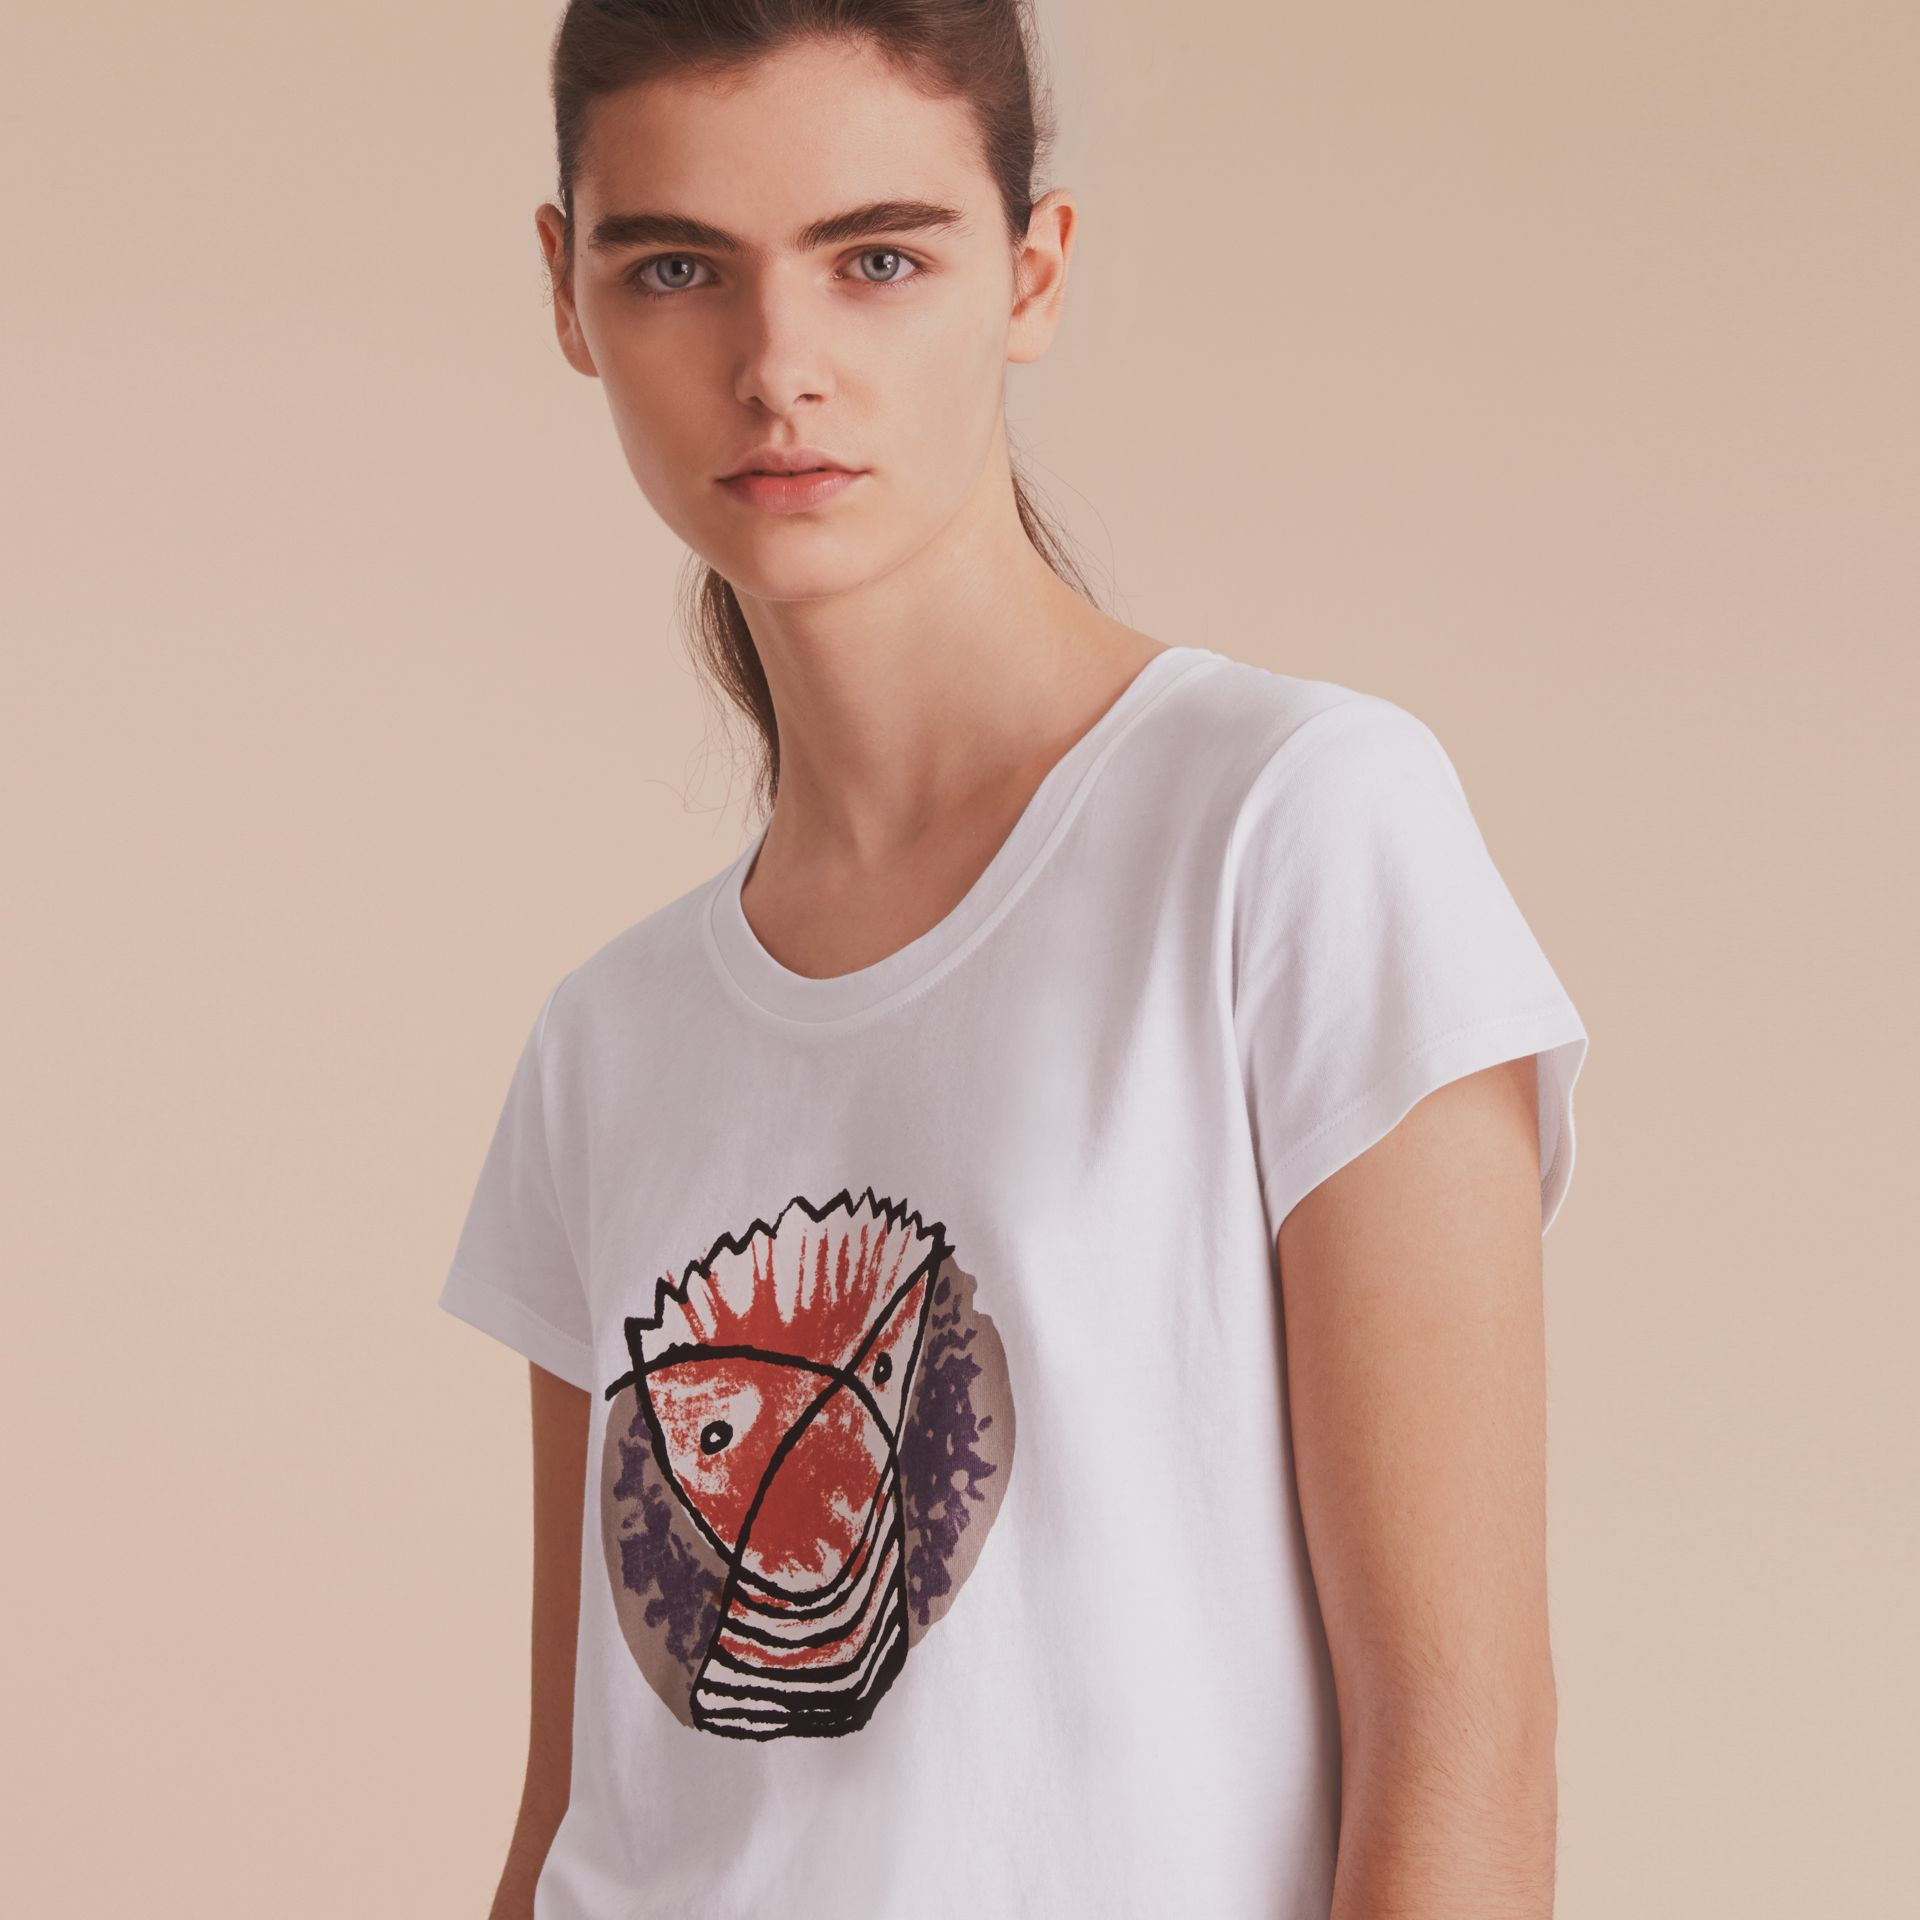 Pallas Heads Print Cotton T-shirt in White - Women | Burberry - gallery image 5